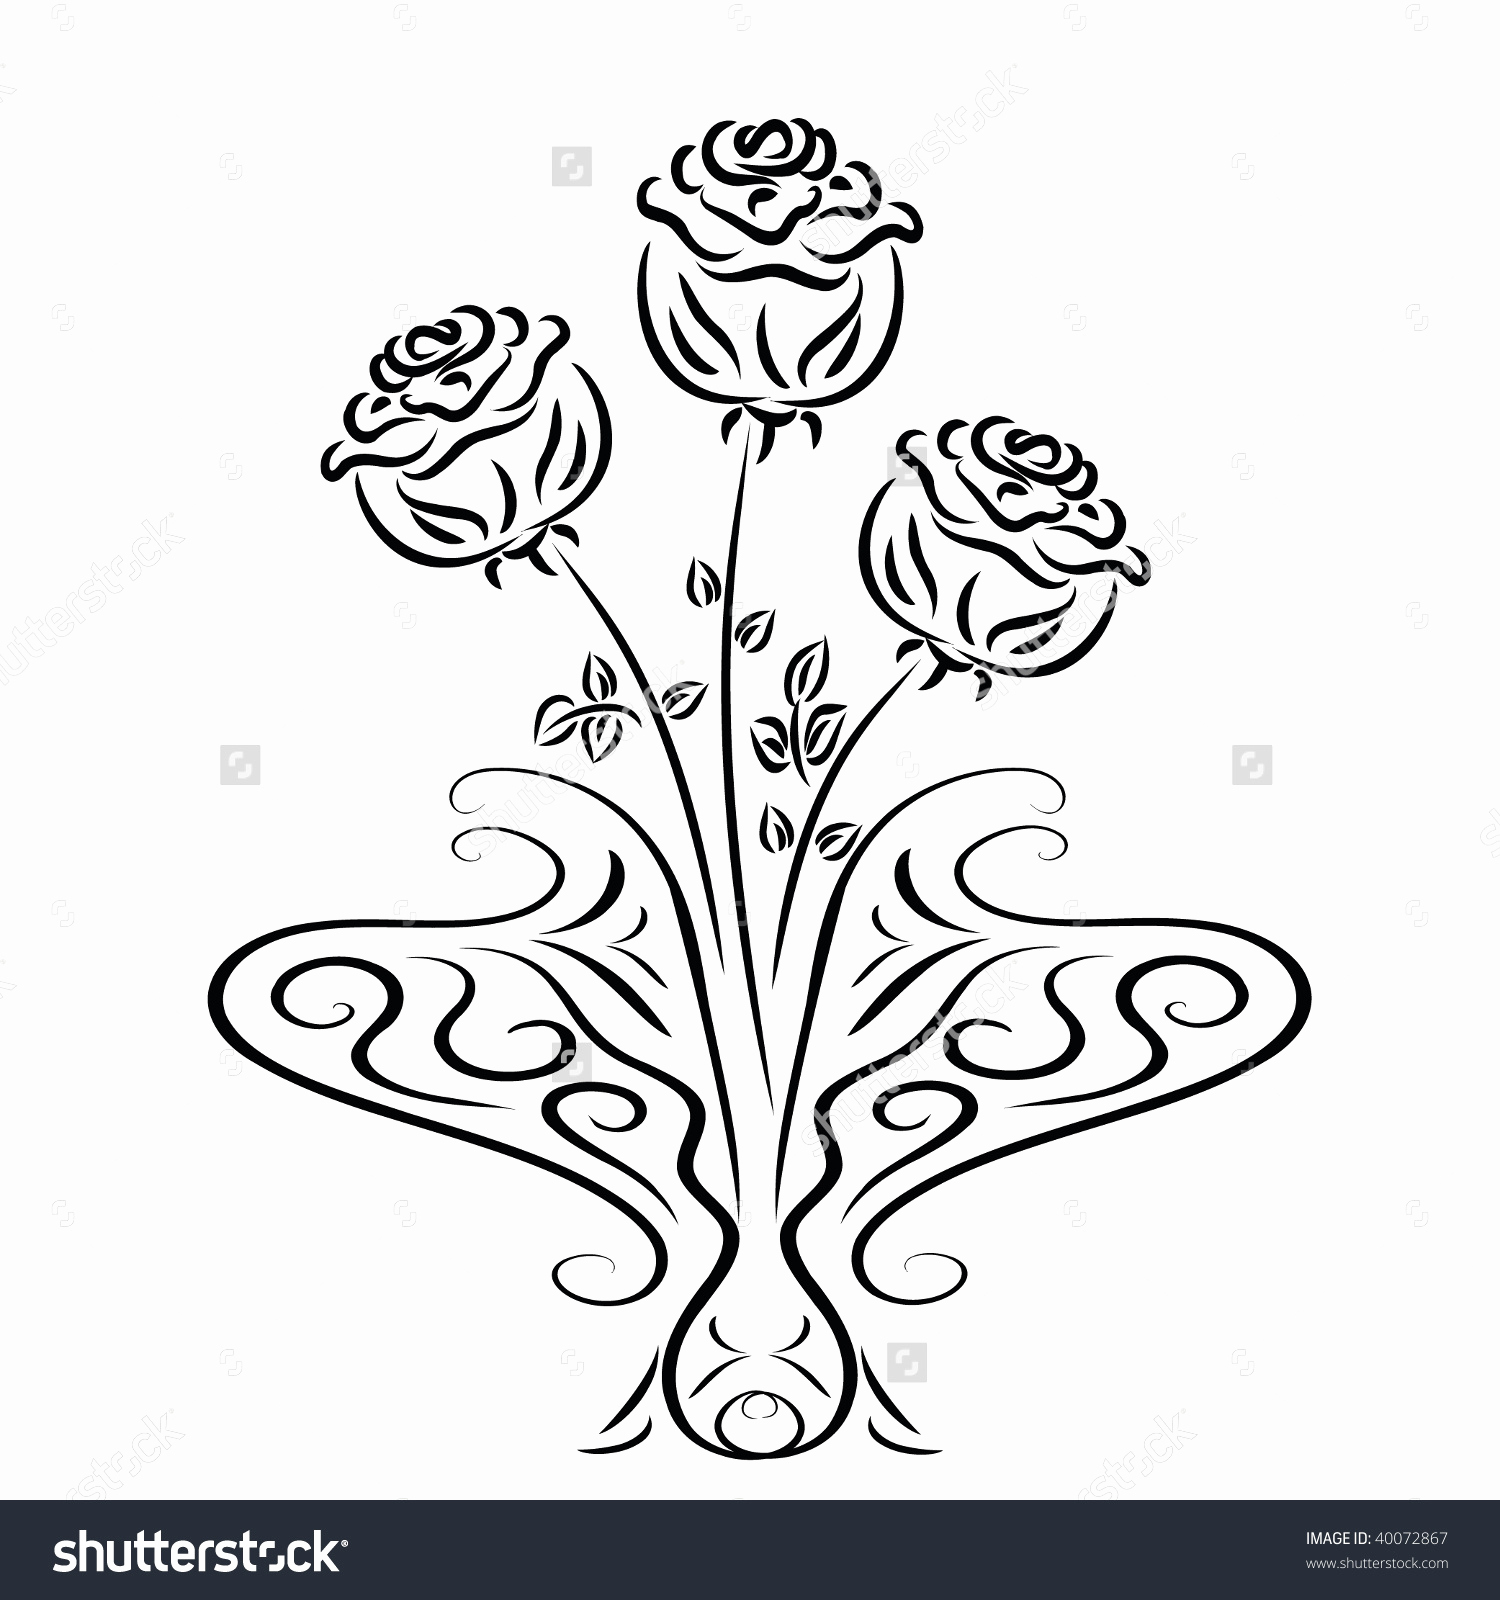 1500x1600 Flower Vase Drawing New Drawing Flower Vase With Flowers Drawing